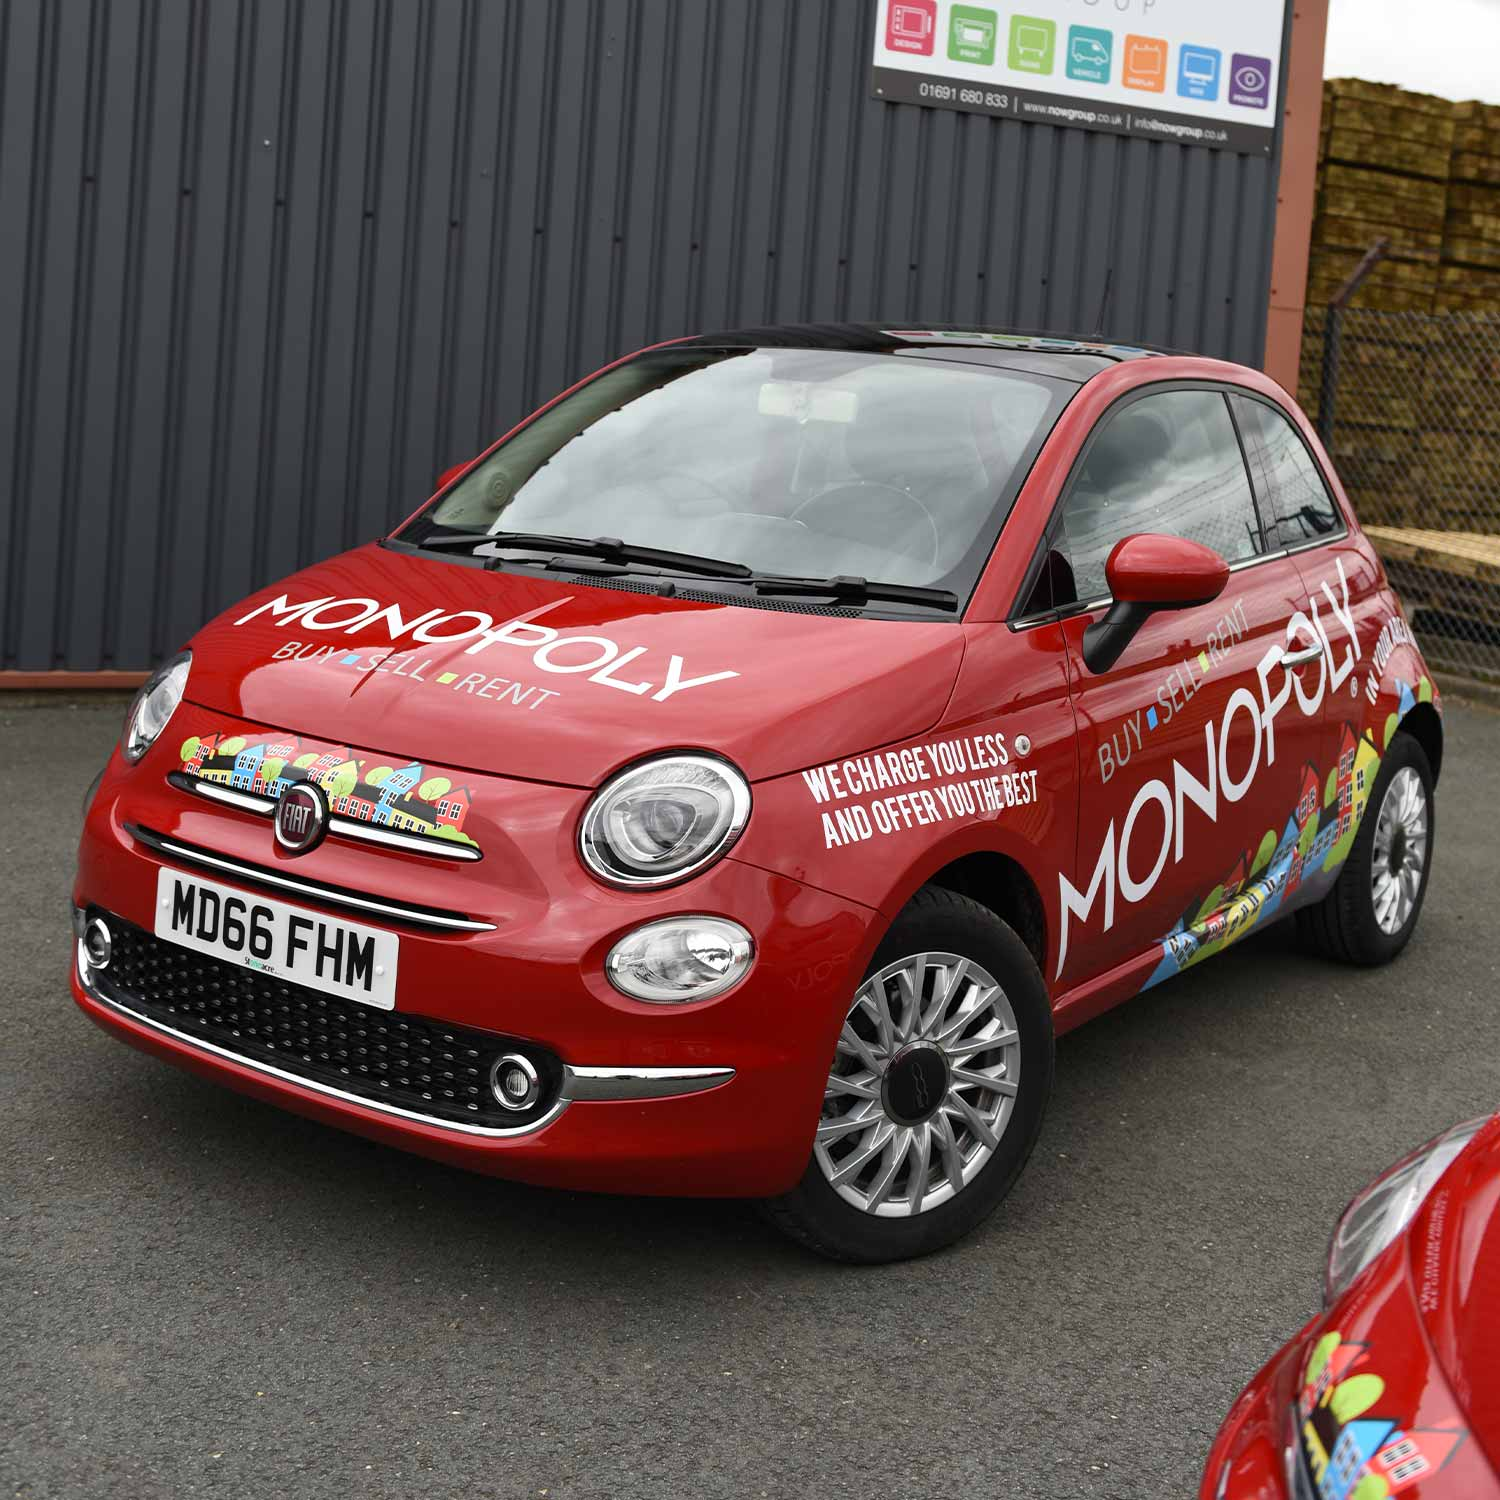 Monopoly Estate Agents Vehicle Wrap - Vehicle Graphics to Red Fiat